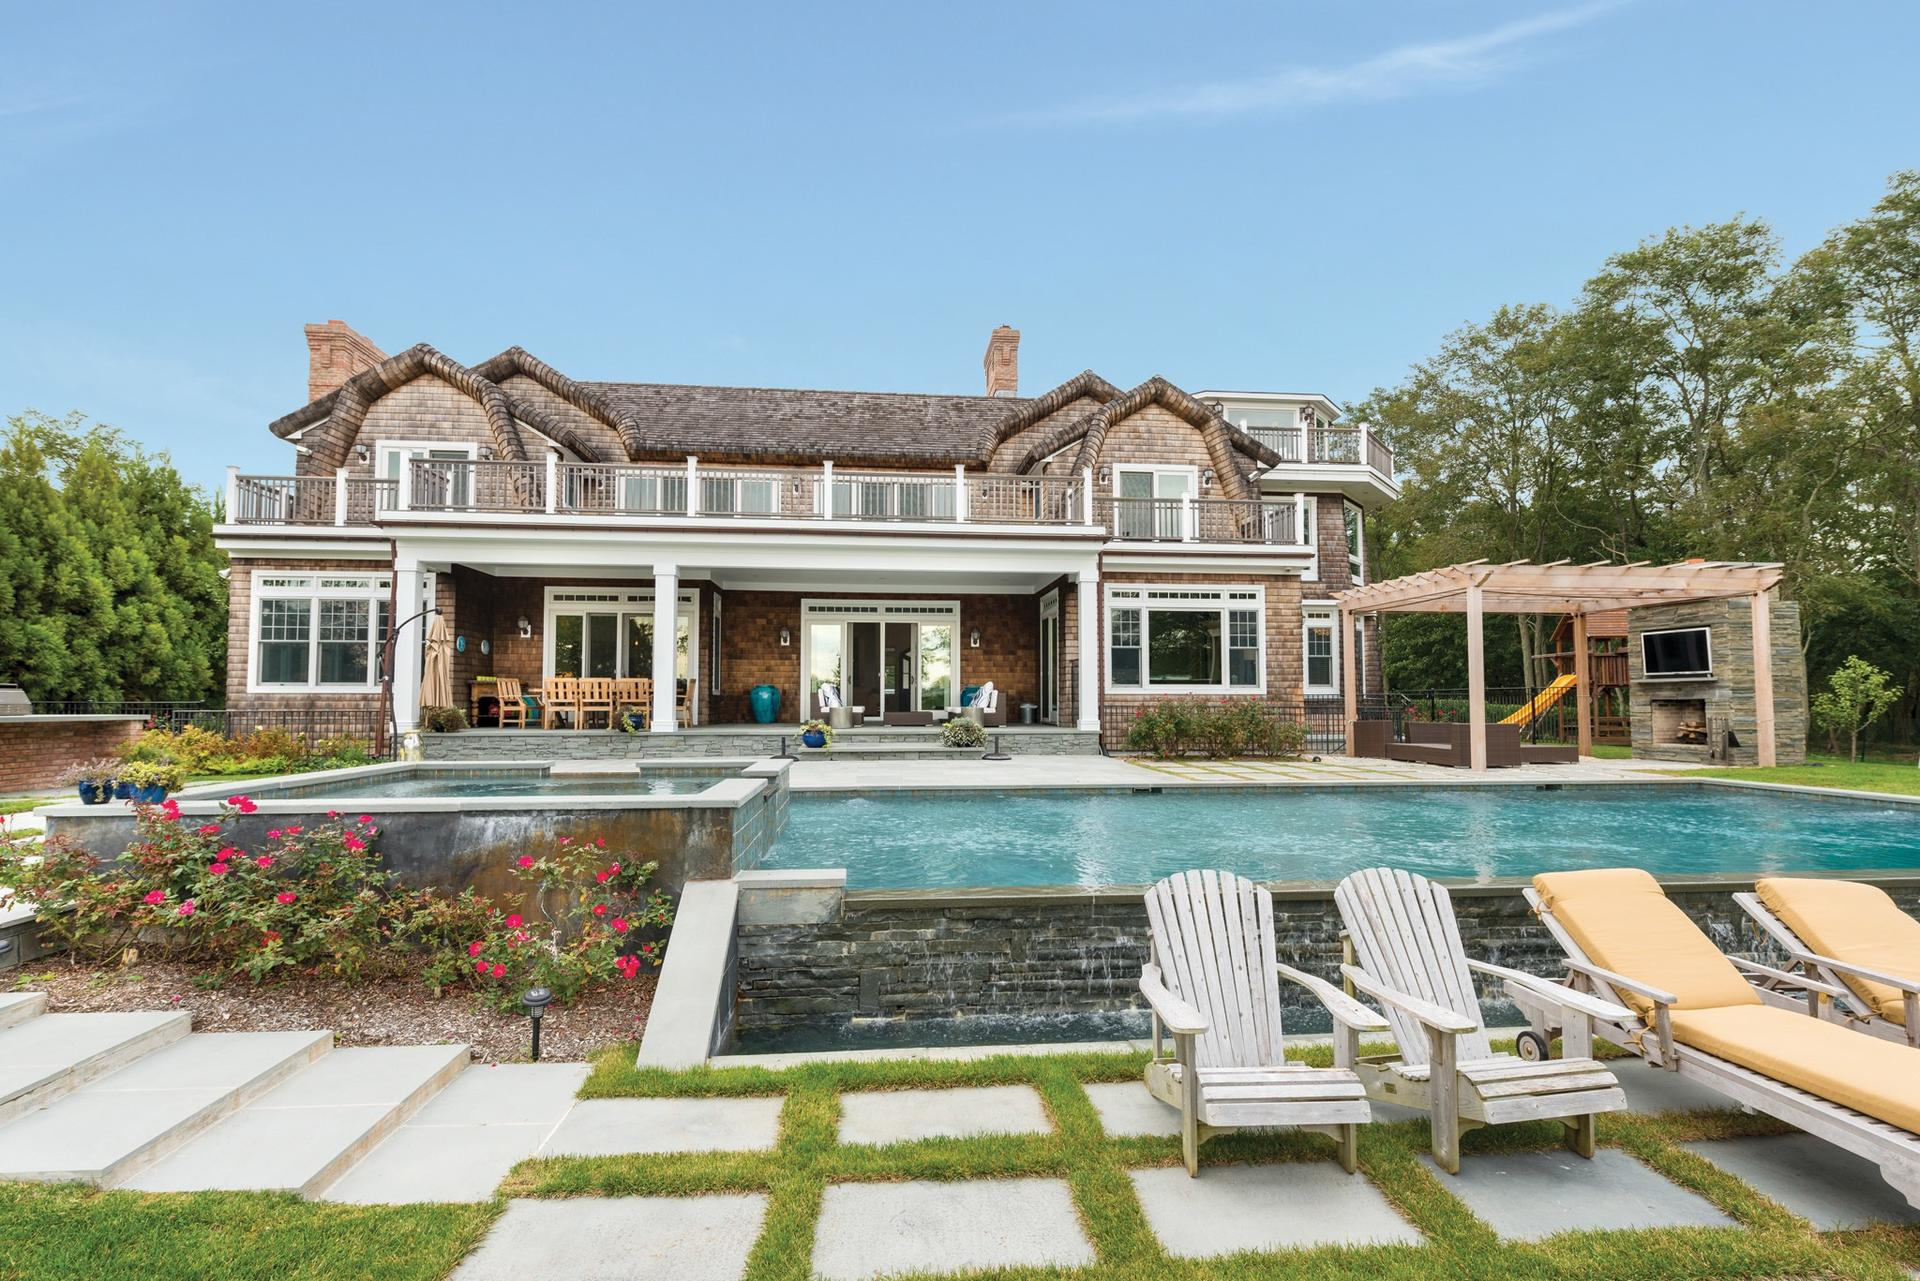 Casa Unifamiliar por un Alquiler en Designer's Own Waterfront Home - Bridgehampton South Bridgehampton, Nueva York